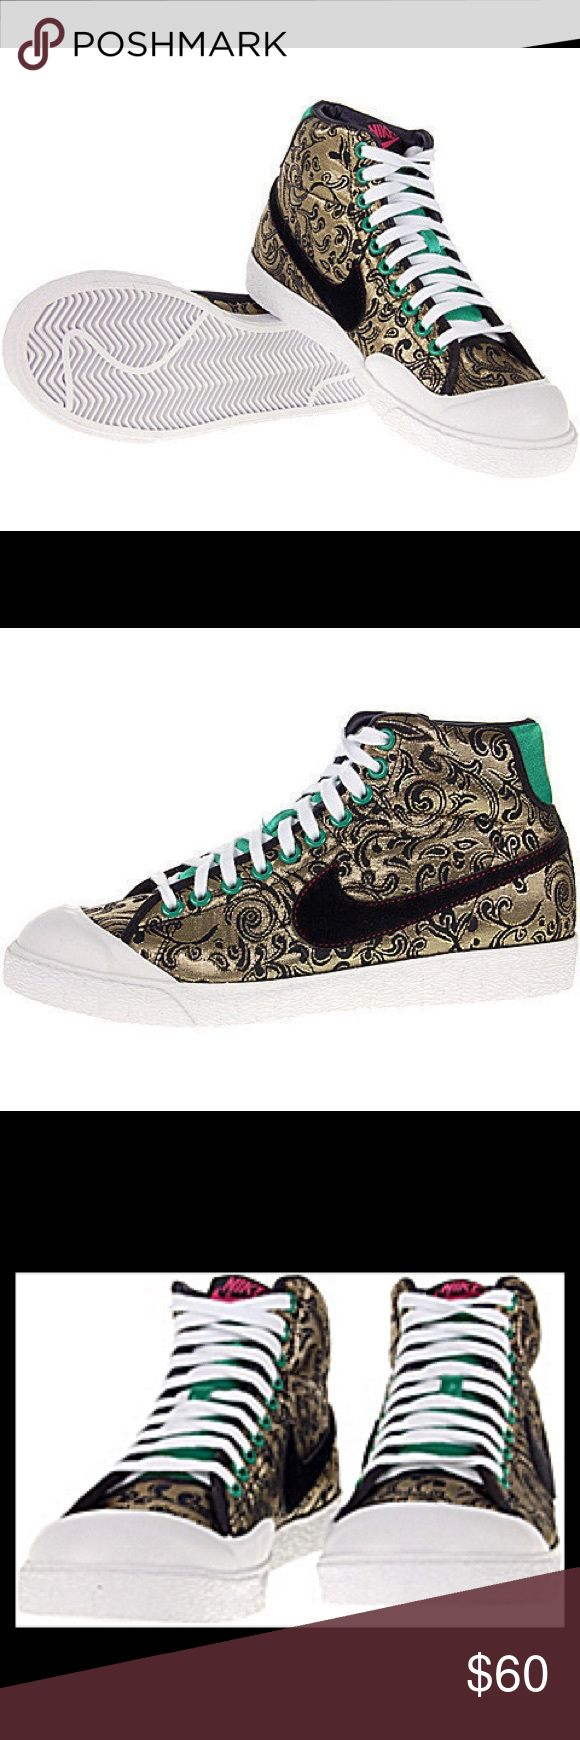 Nike All Court Black And Gold High Top Sneakers Funk meets fashion with the All Court model for the ladies. It features a canvas upper with eye-catching paisley design, signature swoosh, and green accents. Although a design like this is usually seen on grandma's couch, because Nike used gold and black it works fantastically on a sneaker. And, the added accent colors give a classic design a very modern and stylish look. This model is bound to be popular with ladies who want to add a little…